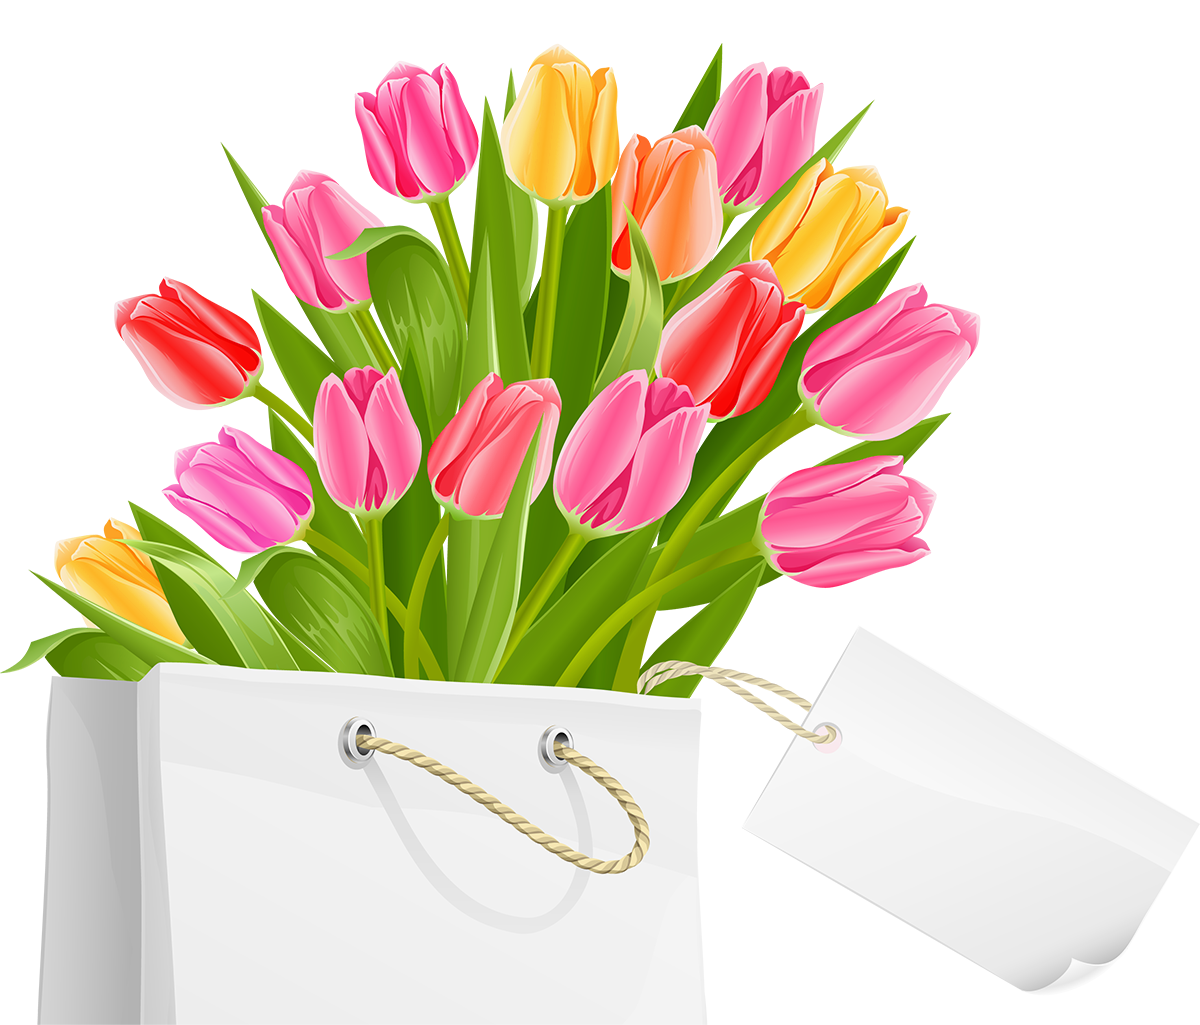 Transparent spring tulip. Bag with tulips png